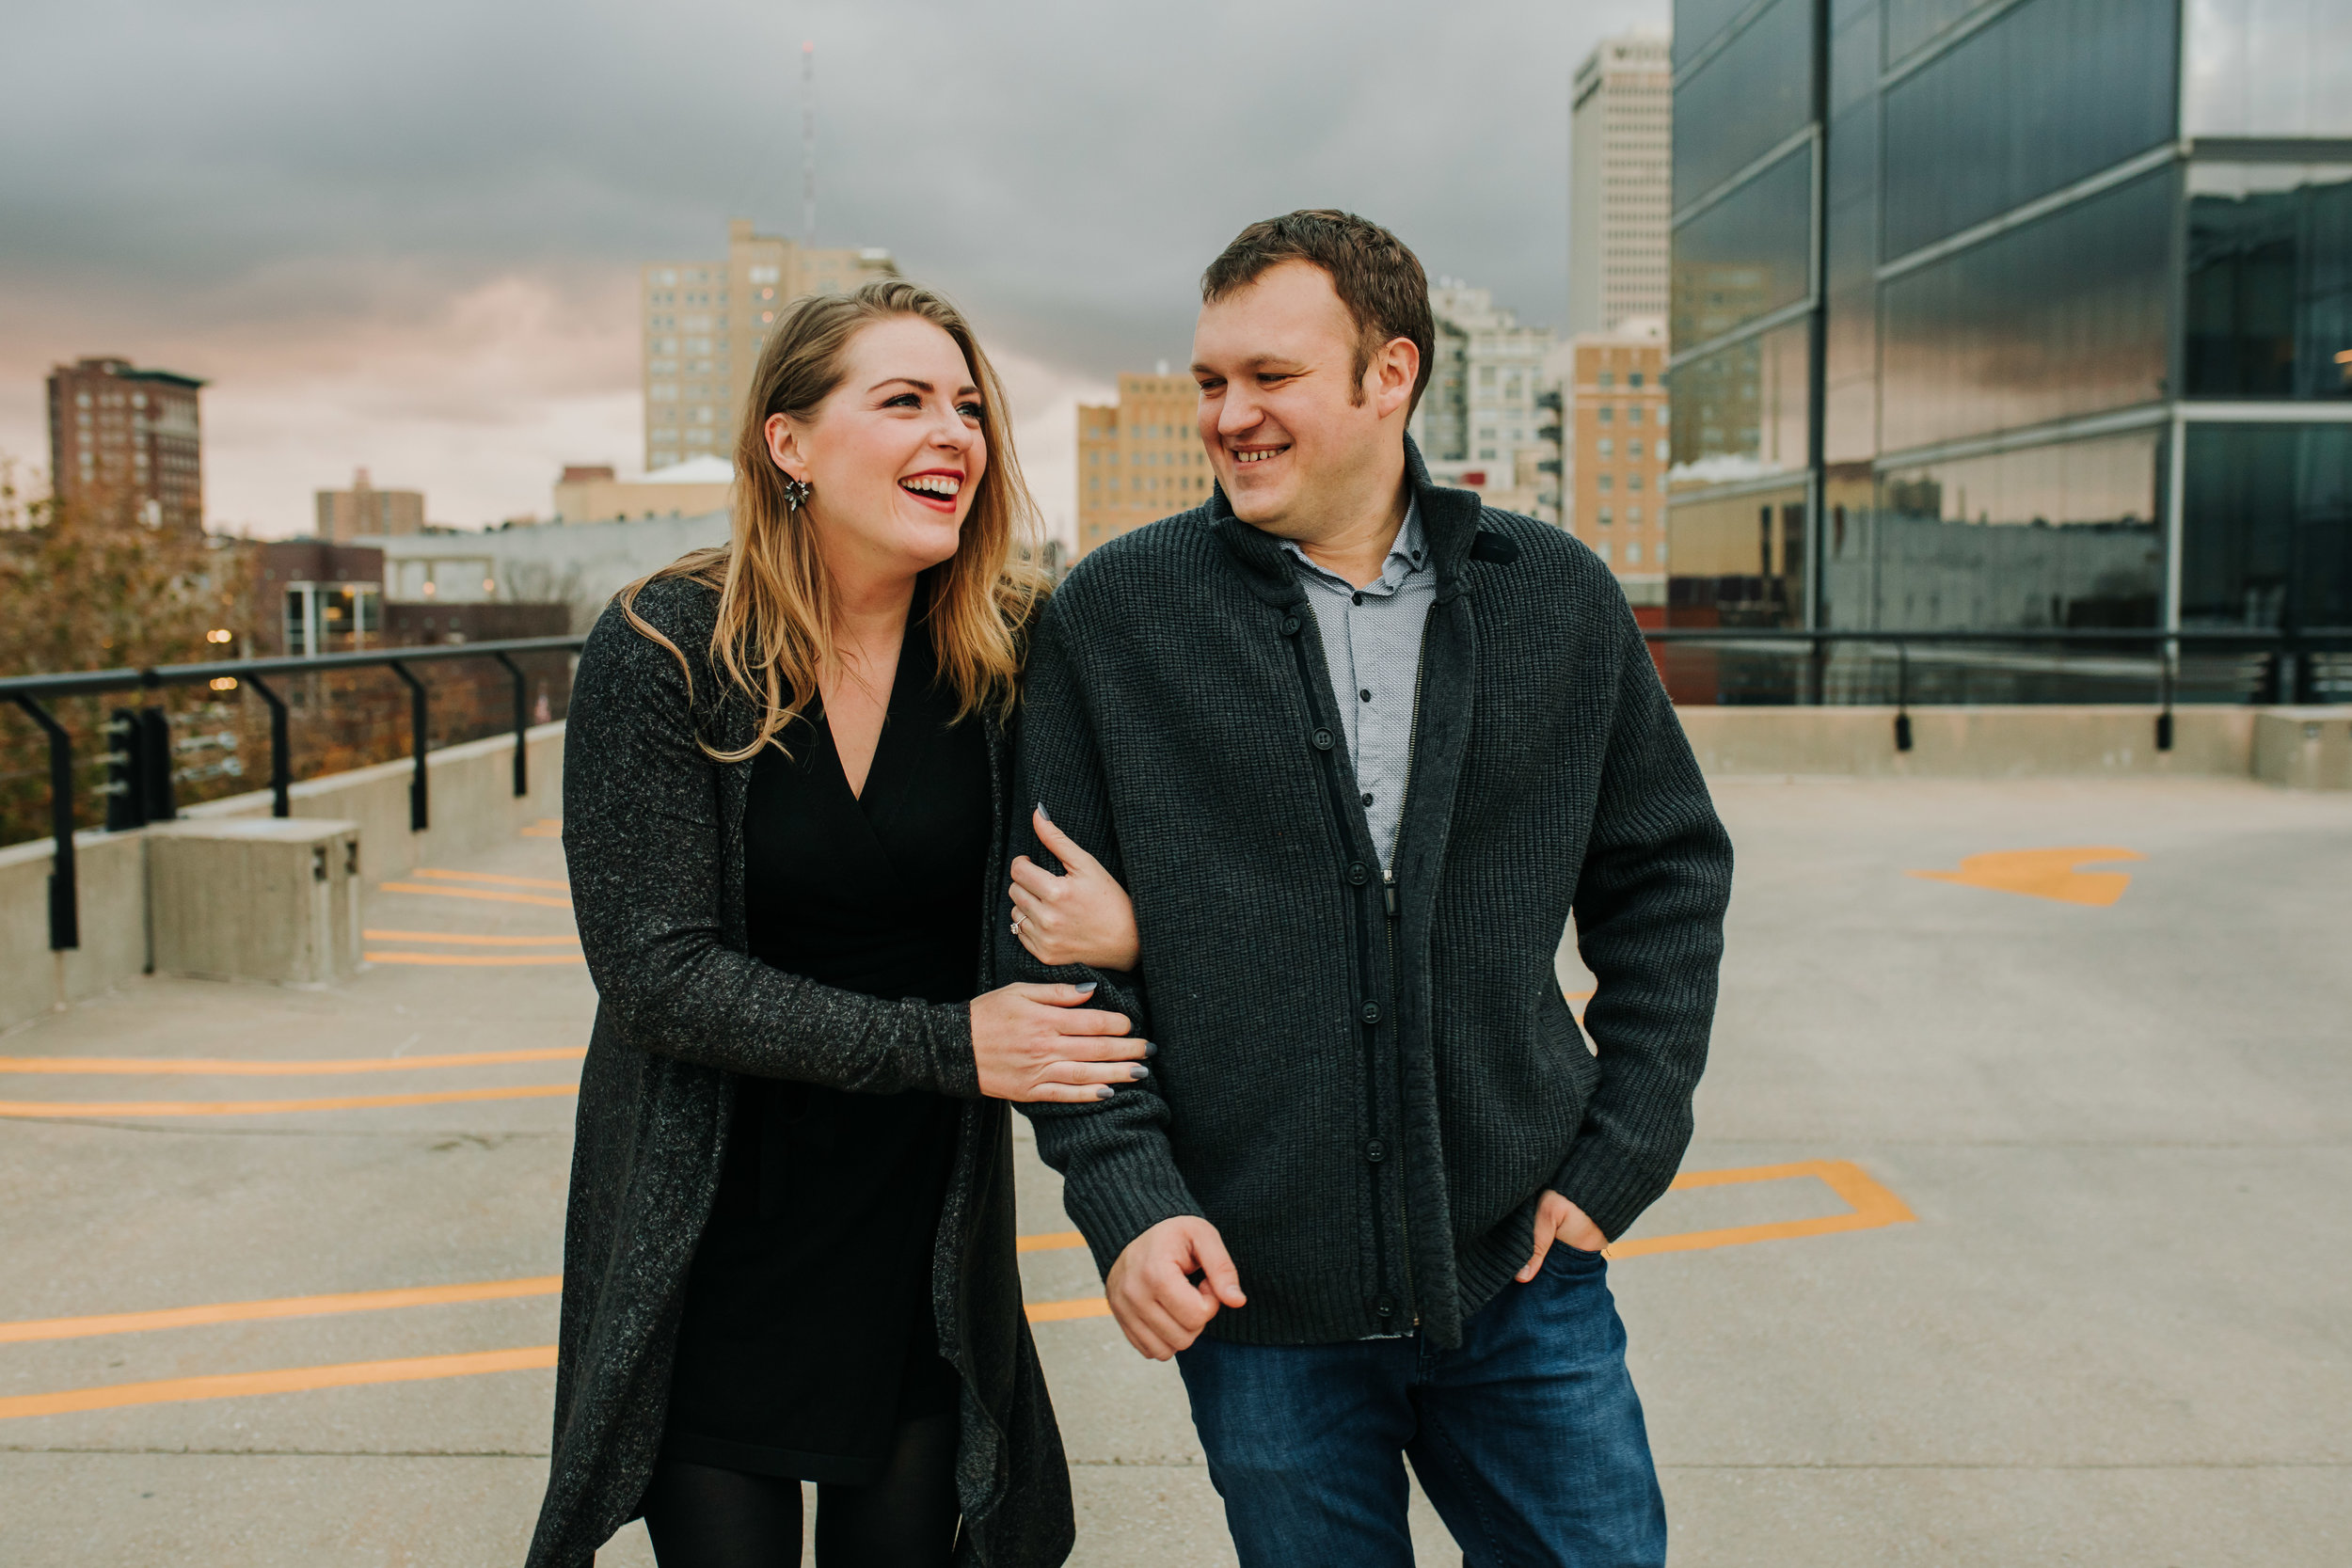 Meghan & Igor - Engaged - Nathaniel Jensen Photography - Omaha Nebraska Wedding Photograper-110.jpg